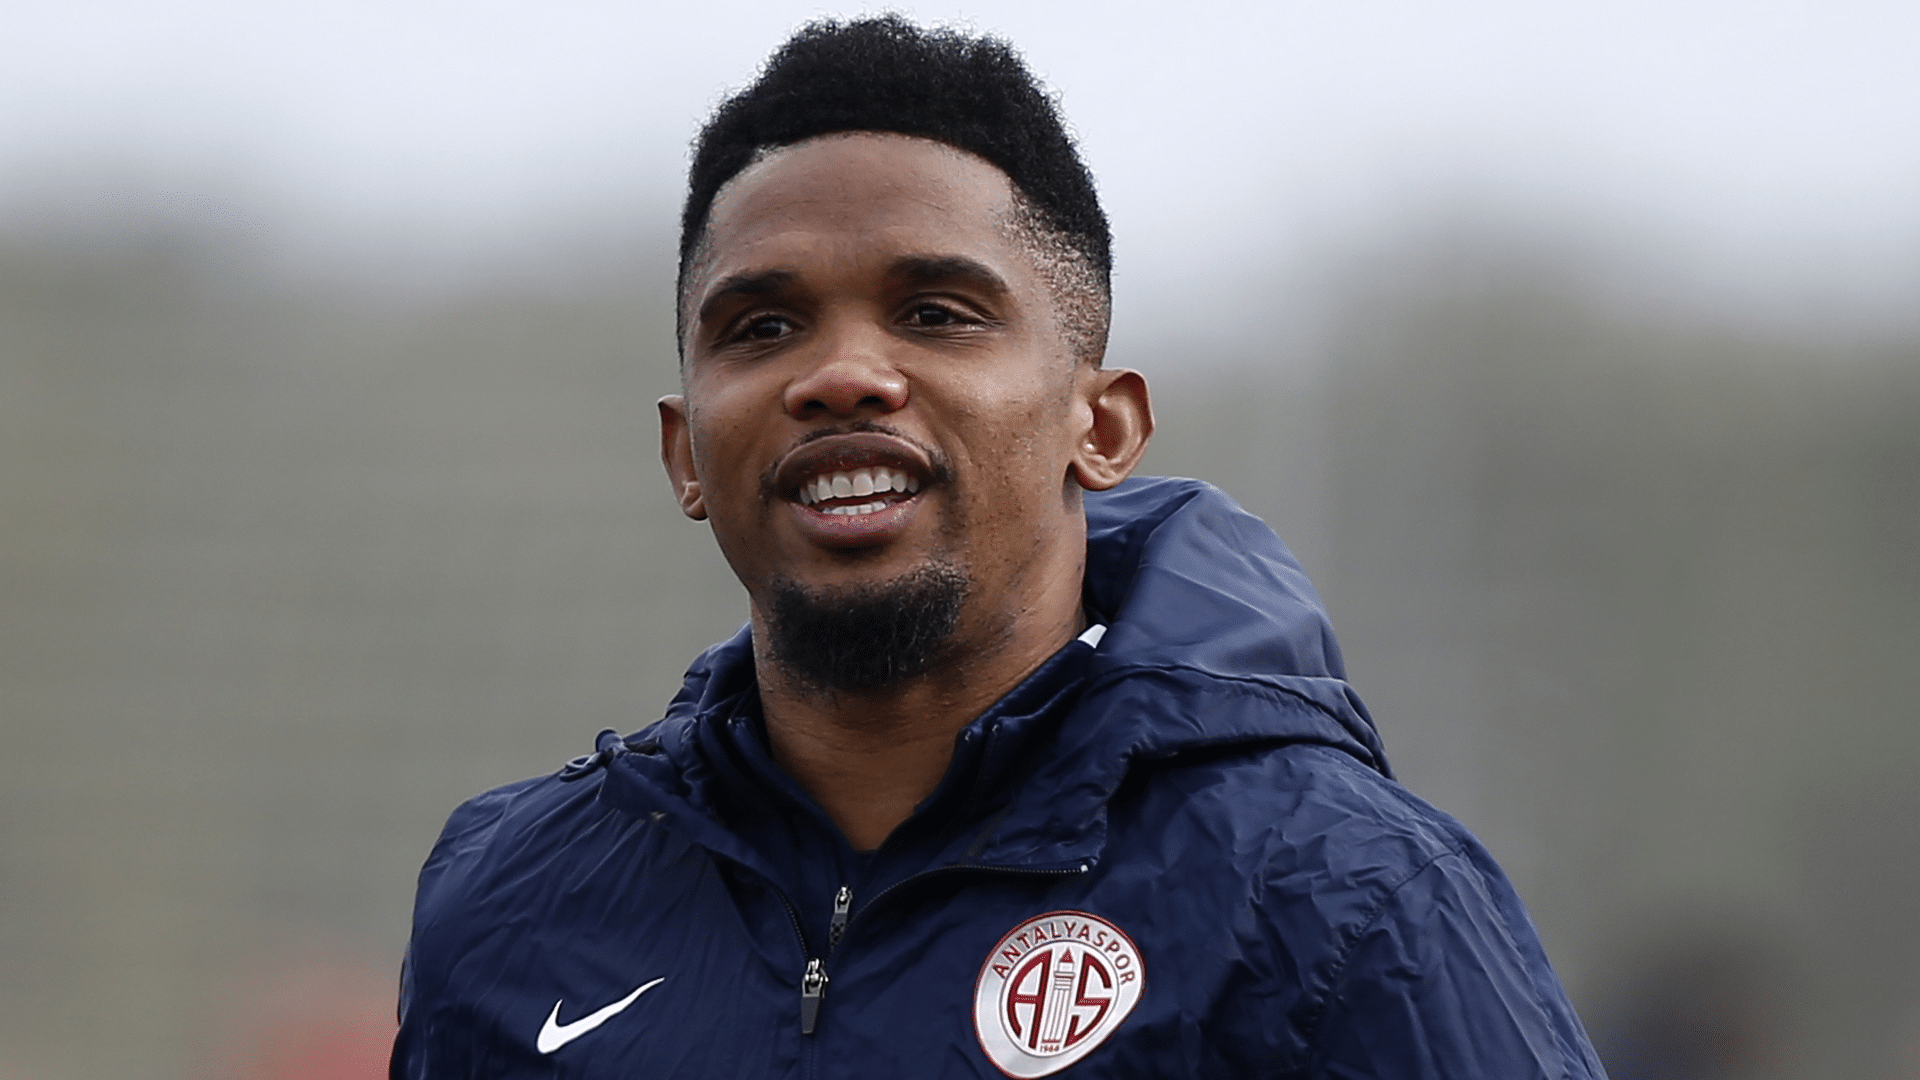 Samuel Eto'o, Julio Baptista, Luis Garcia, others unveiled as latest LaLiga Ambassadors